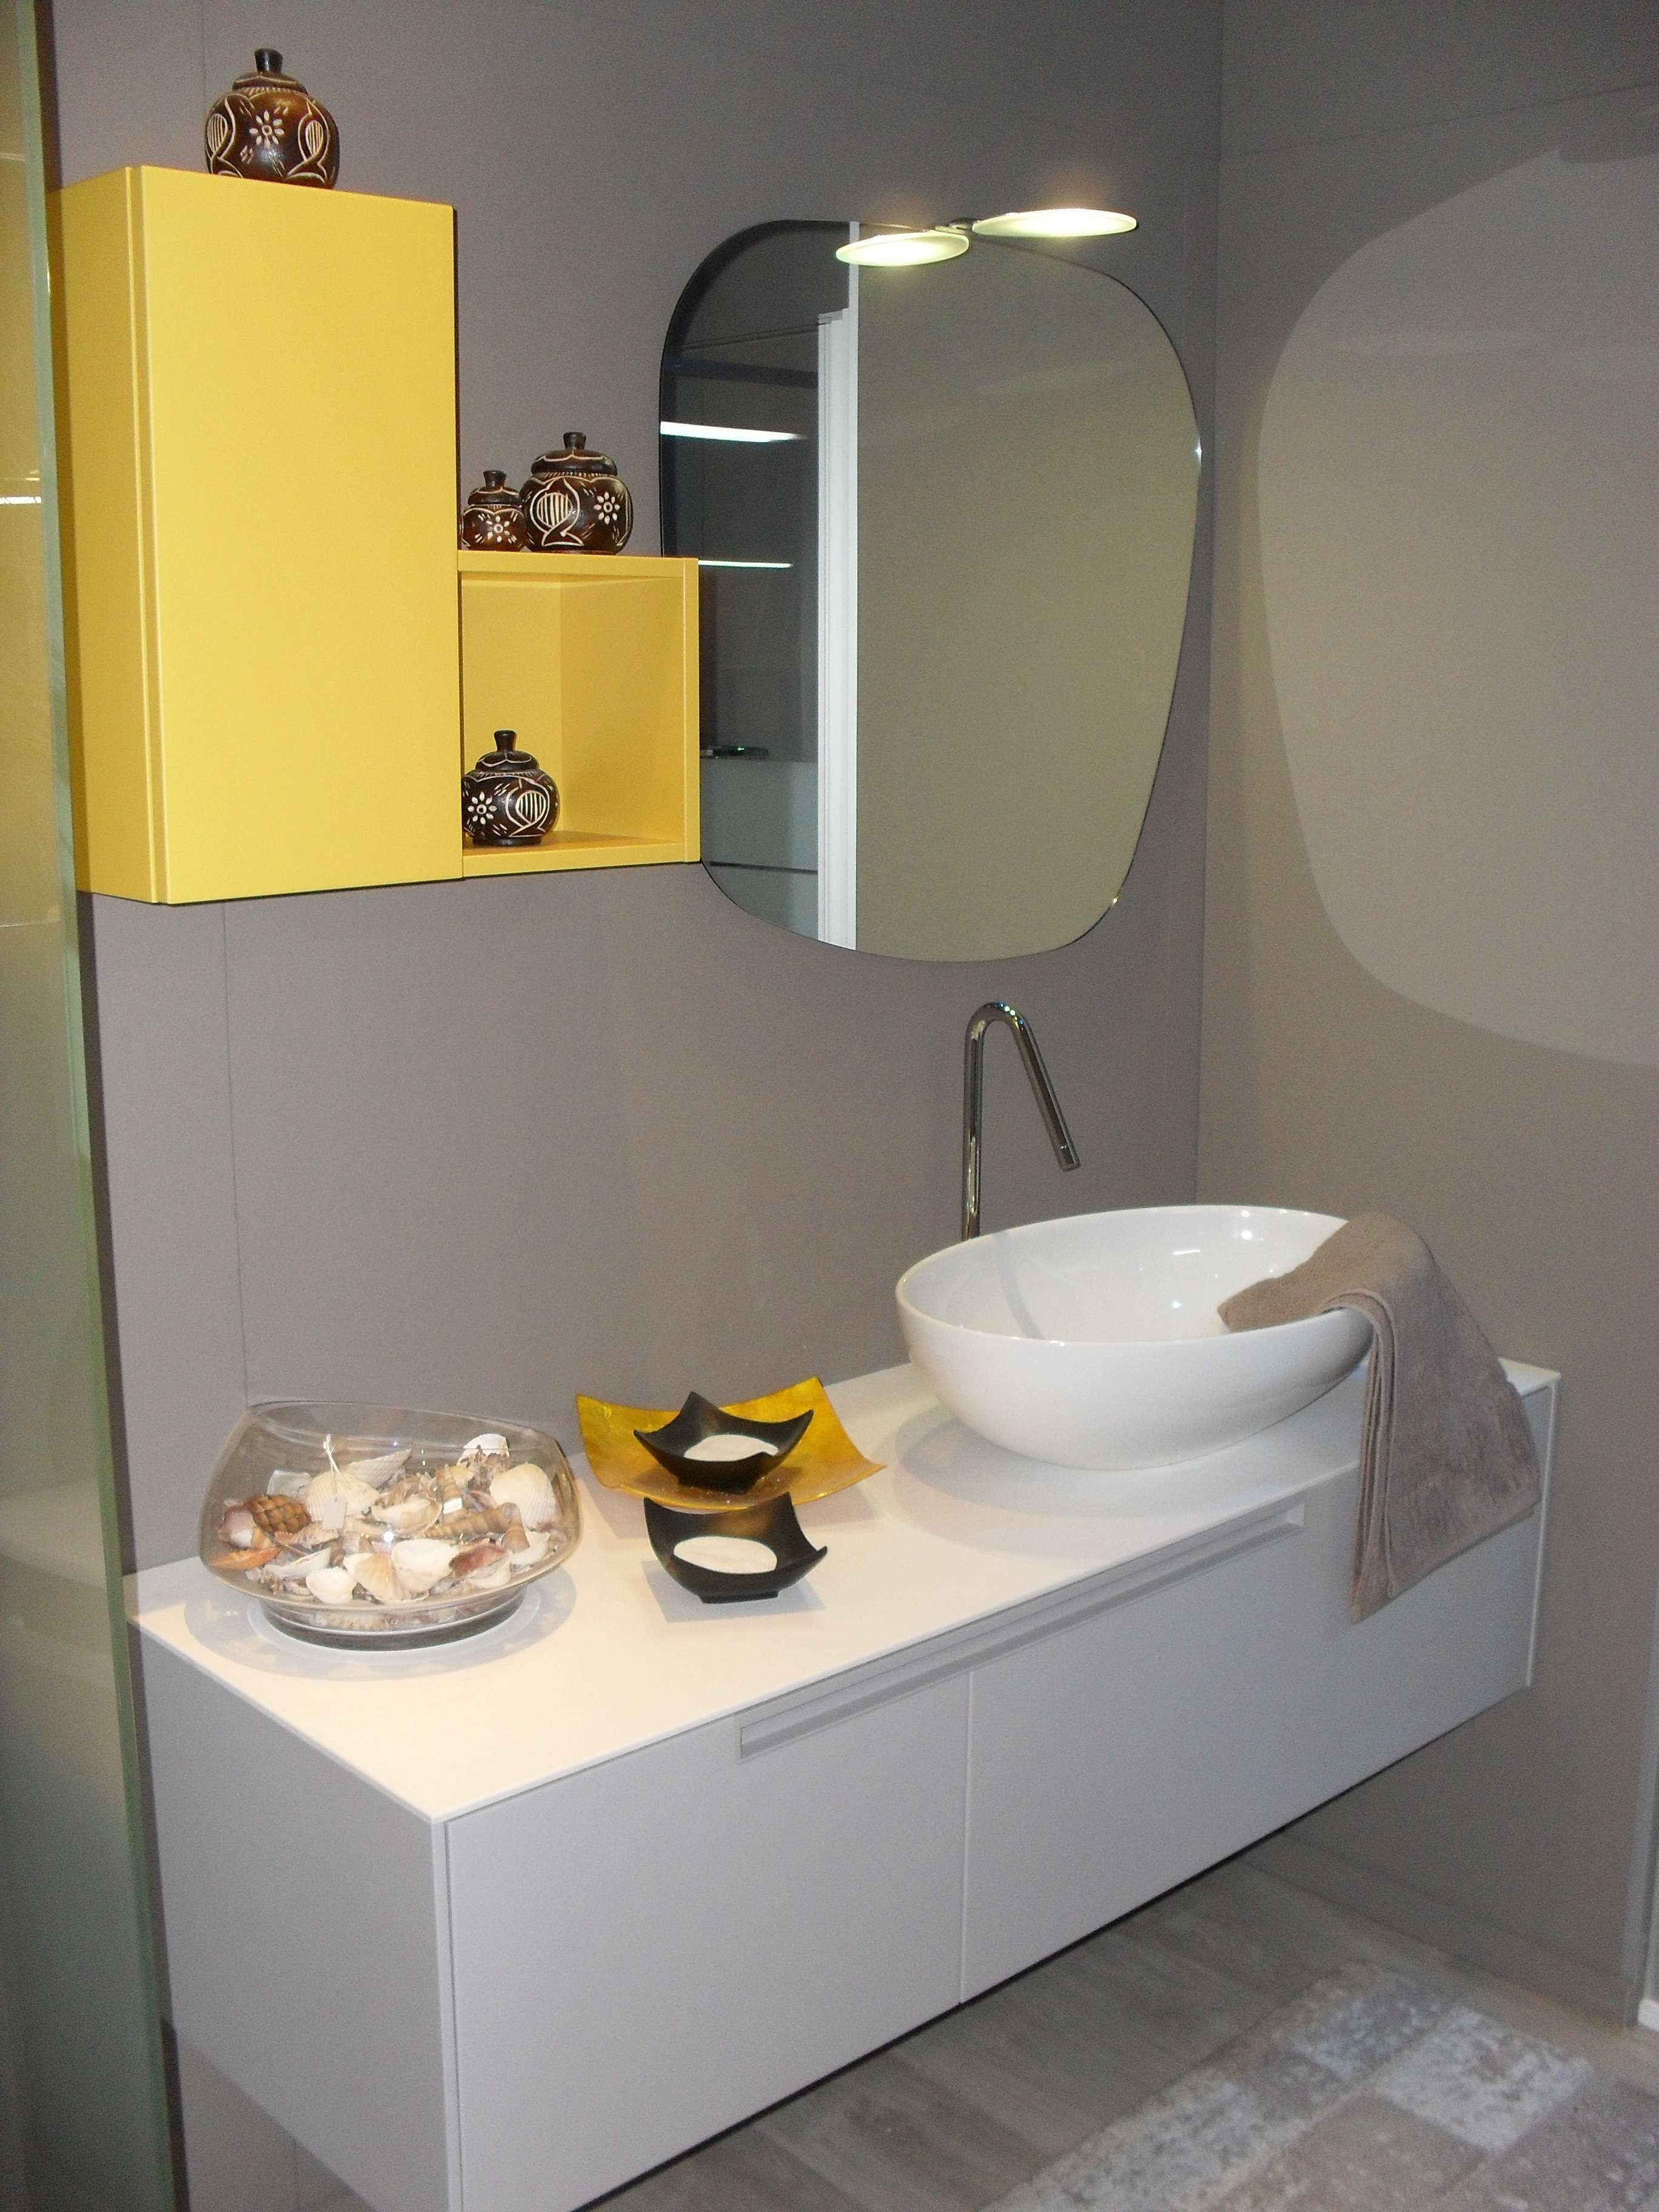 clikad bagno moderno moderno : Outlet Arredamento > Arredo bagno BAGNO MODERNO GRIGIO PERLA E GIALLO ...